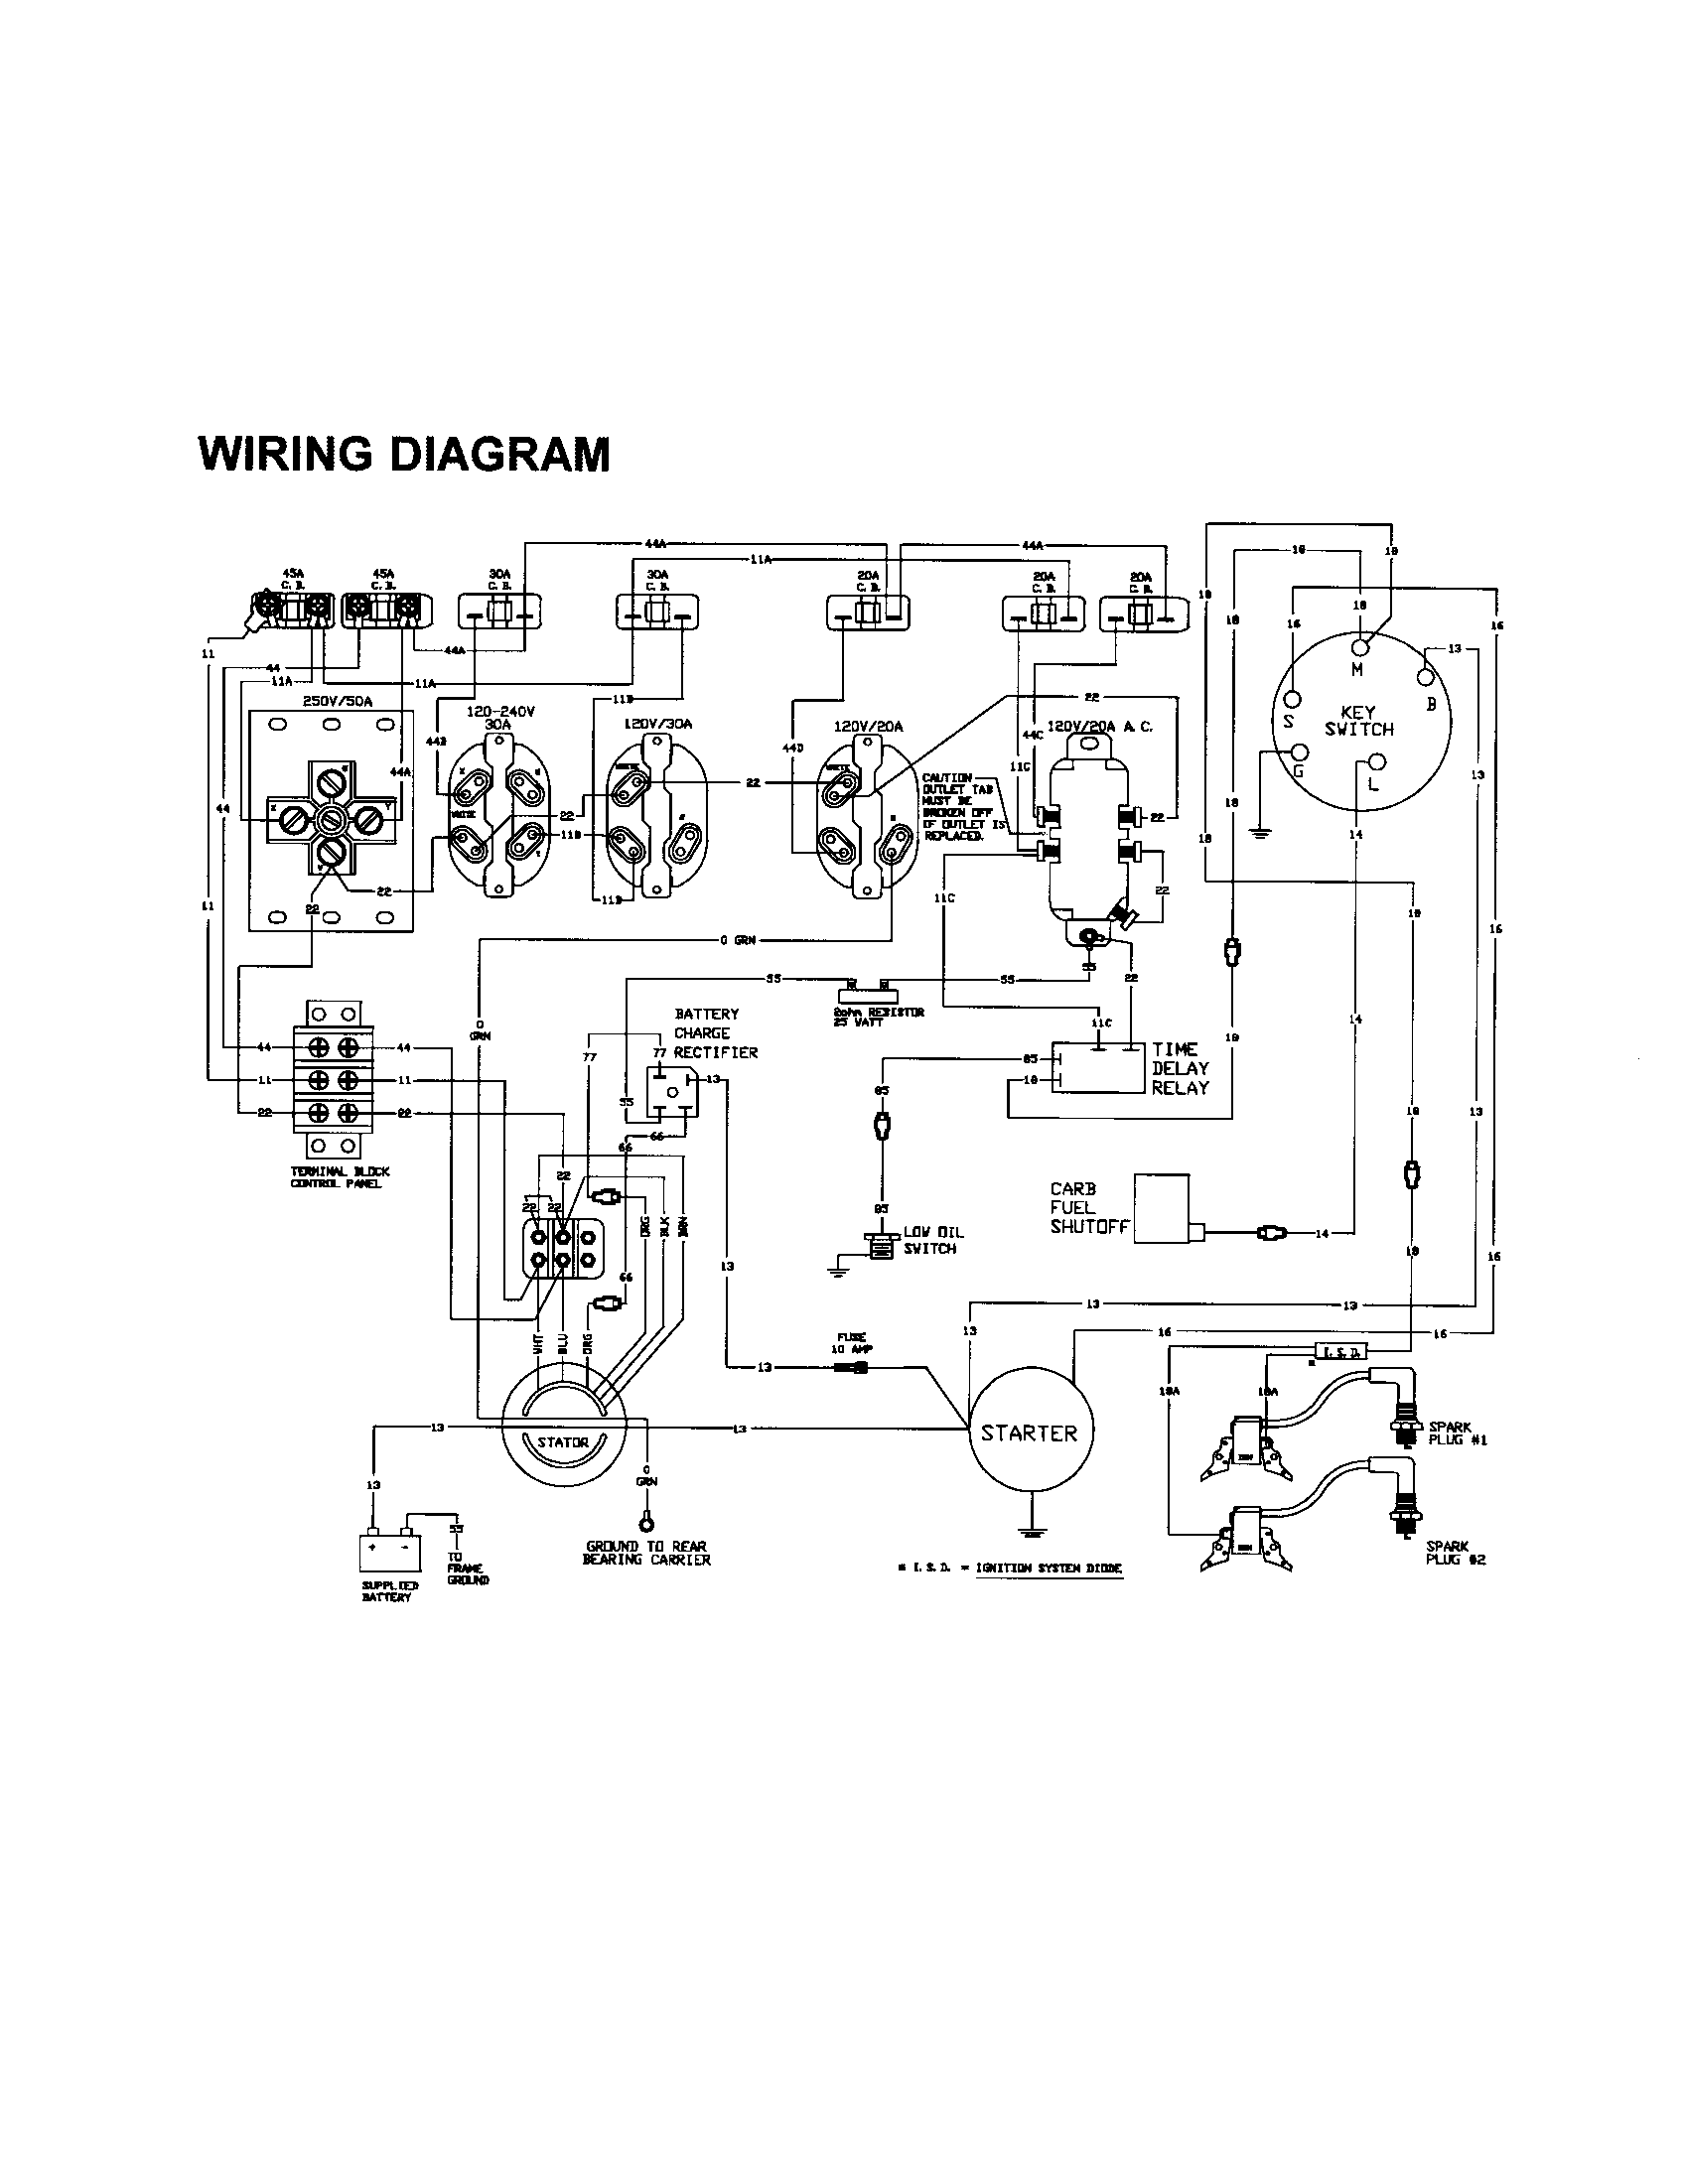 WIRING DIAGRAM Diagram & Parts List for Model 13390